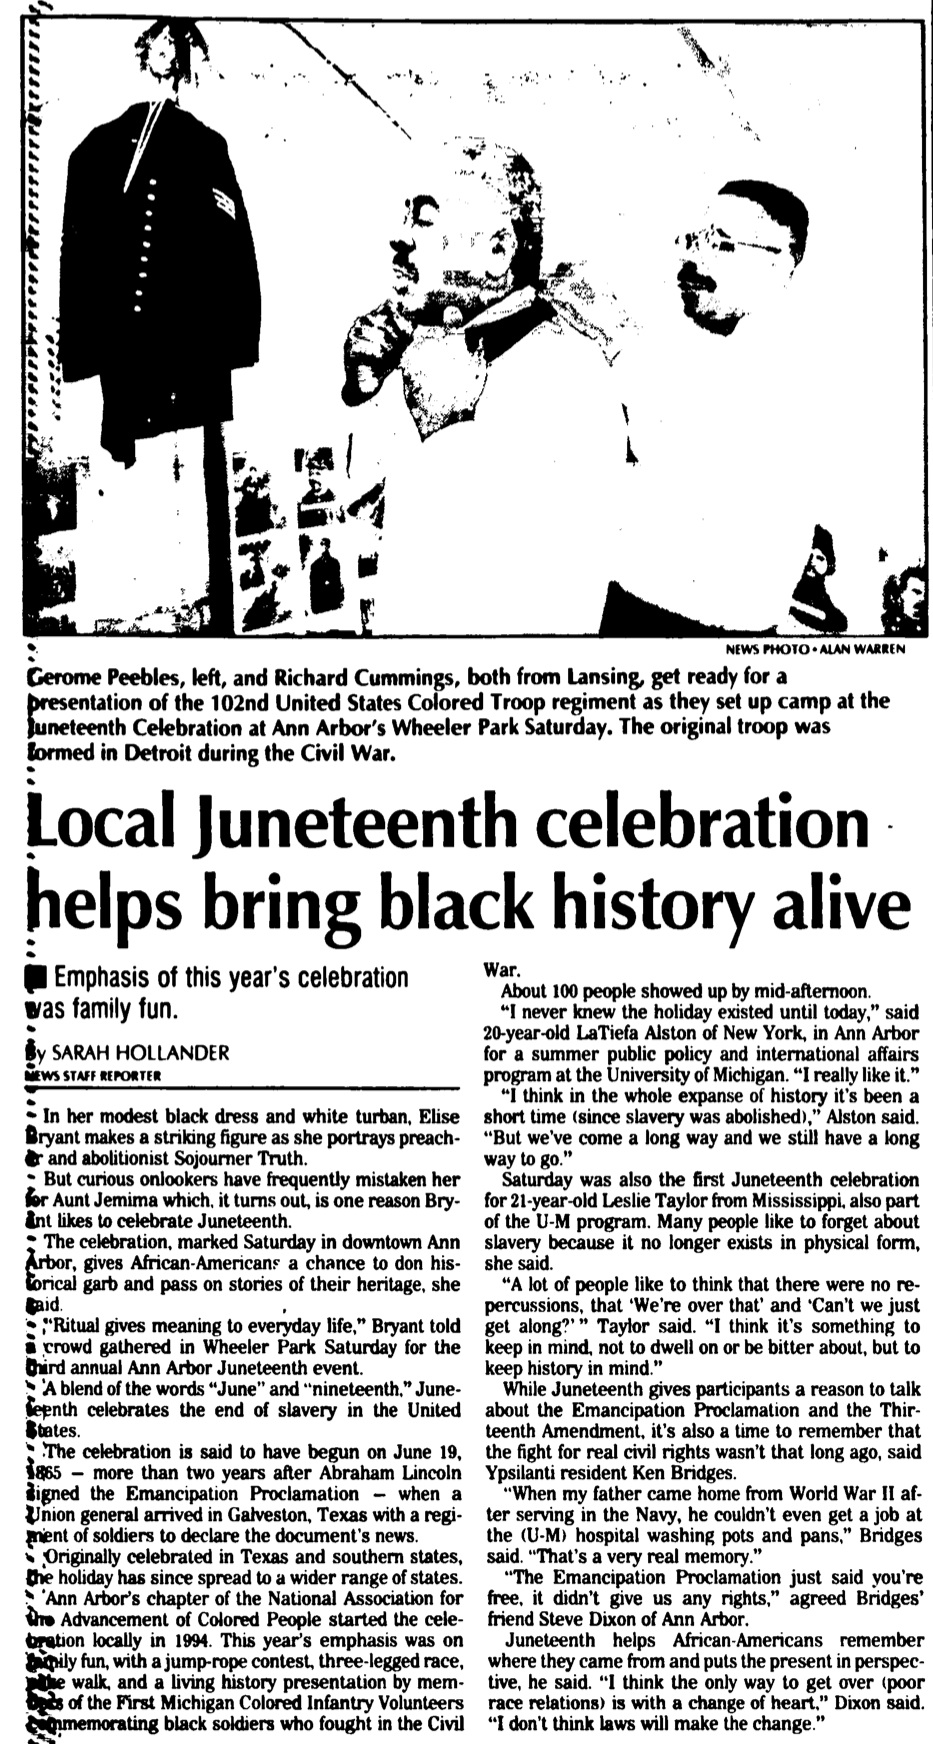 Local Juneteenth Celebration Helps Bring Black History Alive image